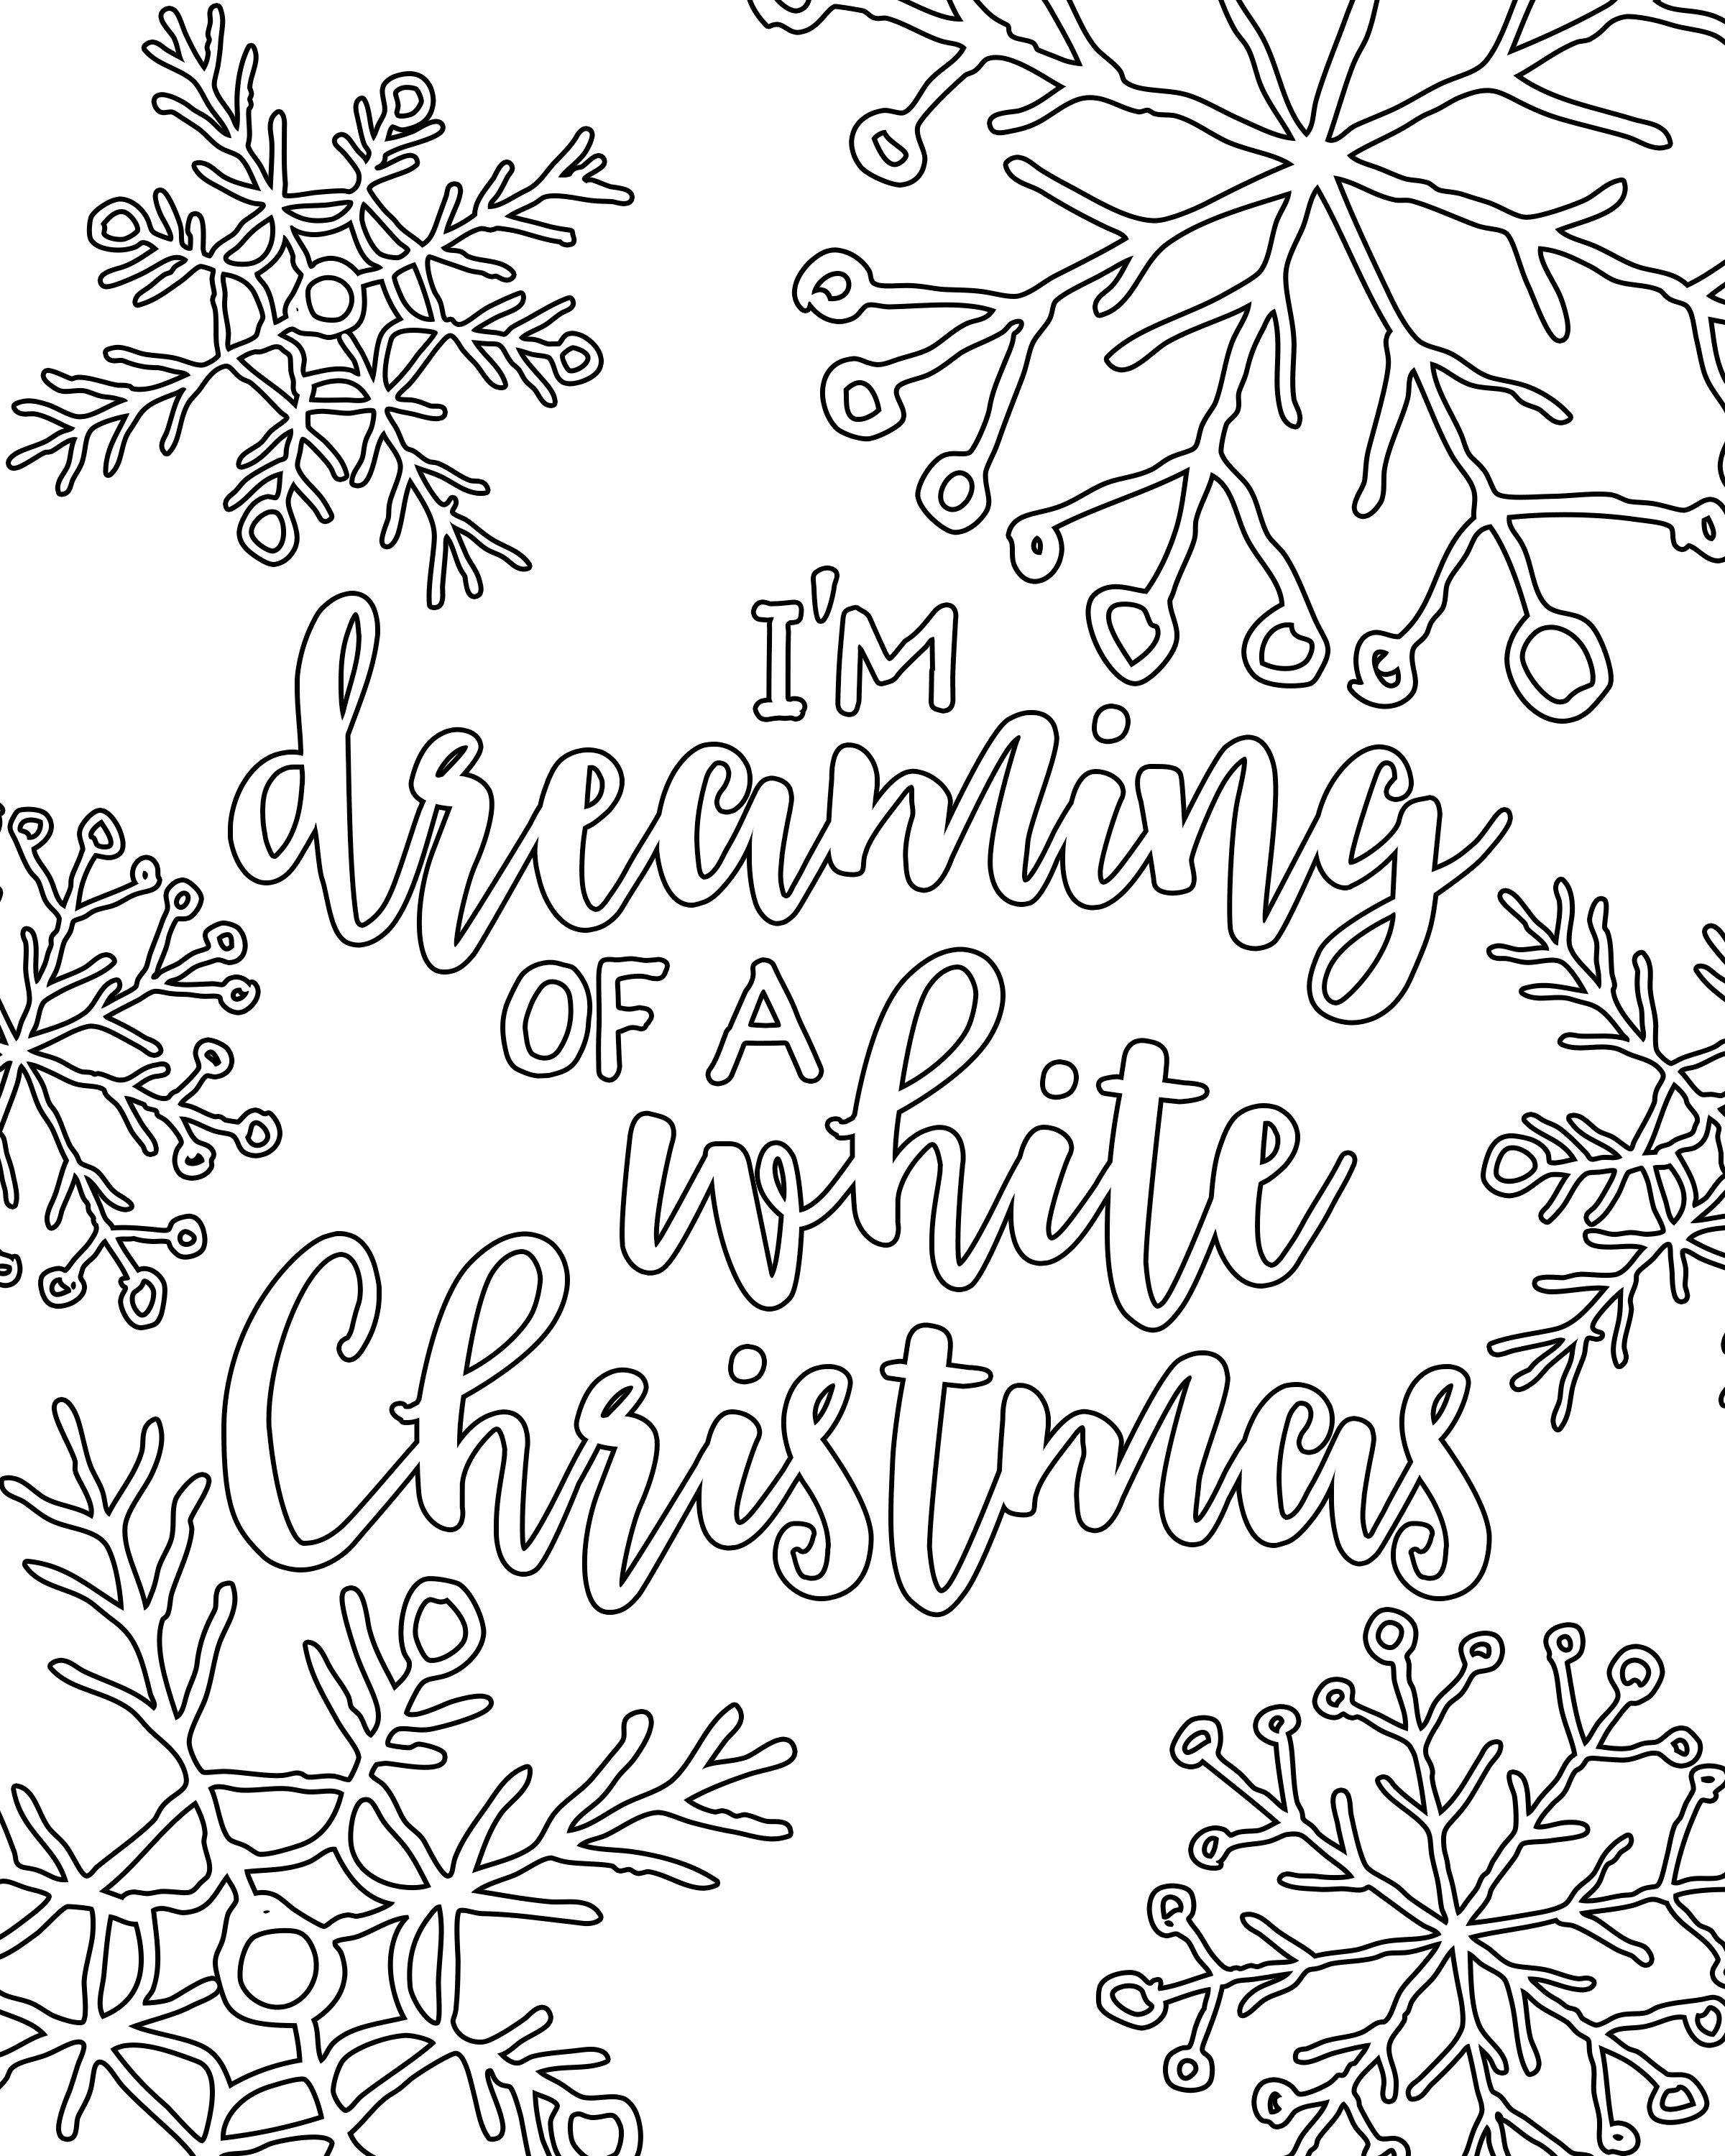 Free Printable White Christmas Adult Coloring Pages - Our ...